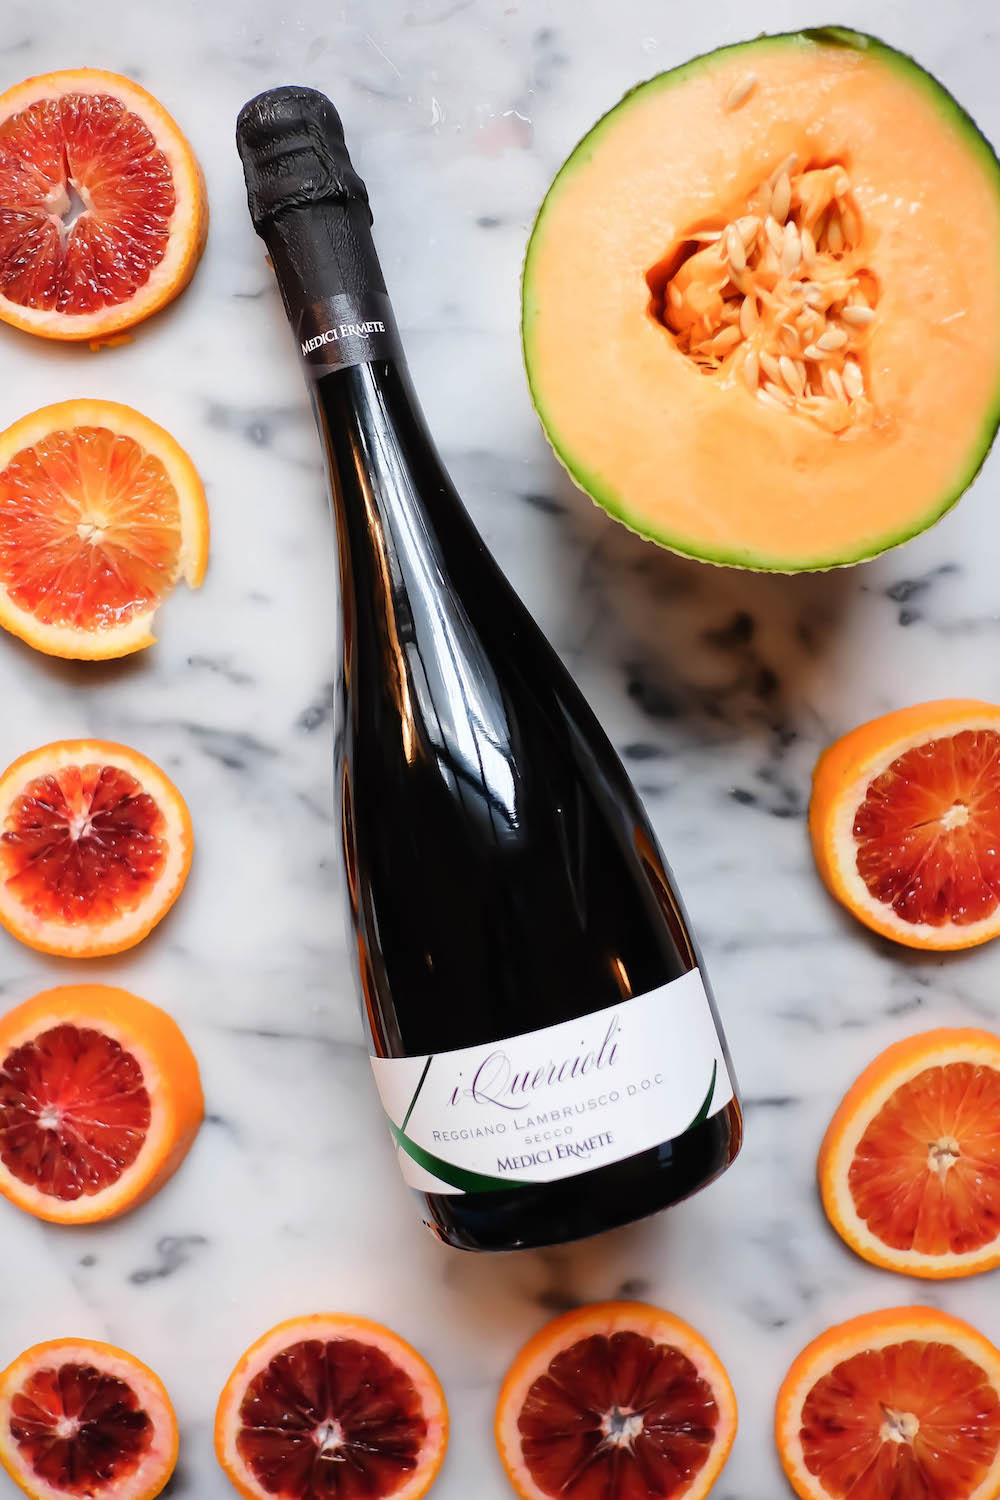 winter frosé recipe - ingredients: lambrusco wine, blood orange, cantaloupe | the stripe blog